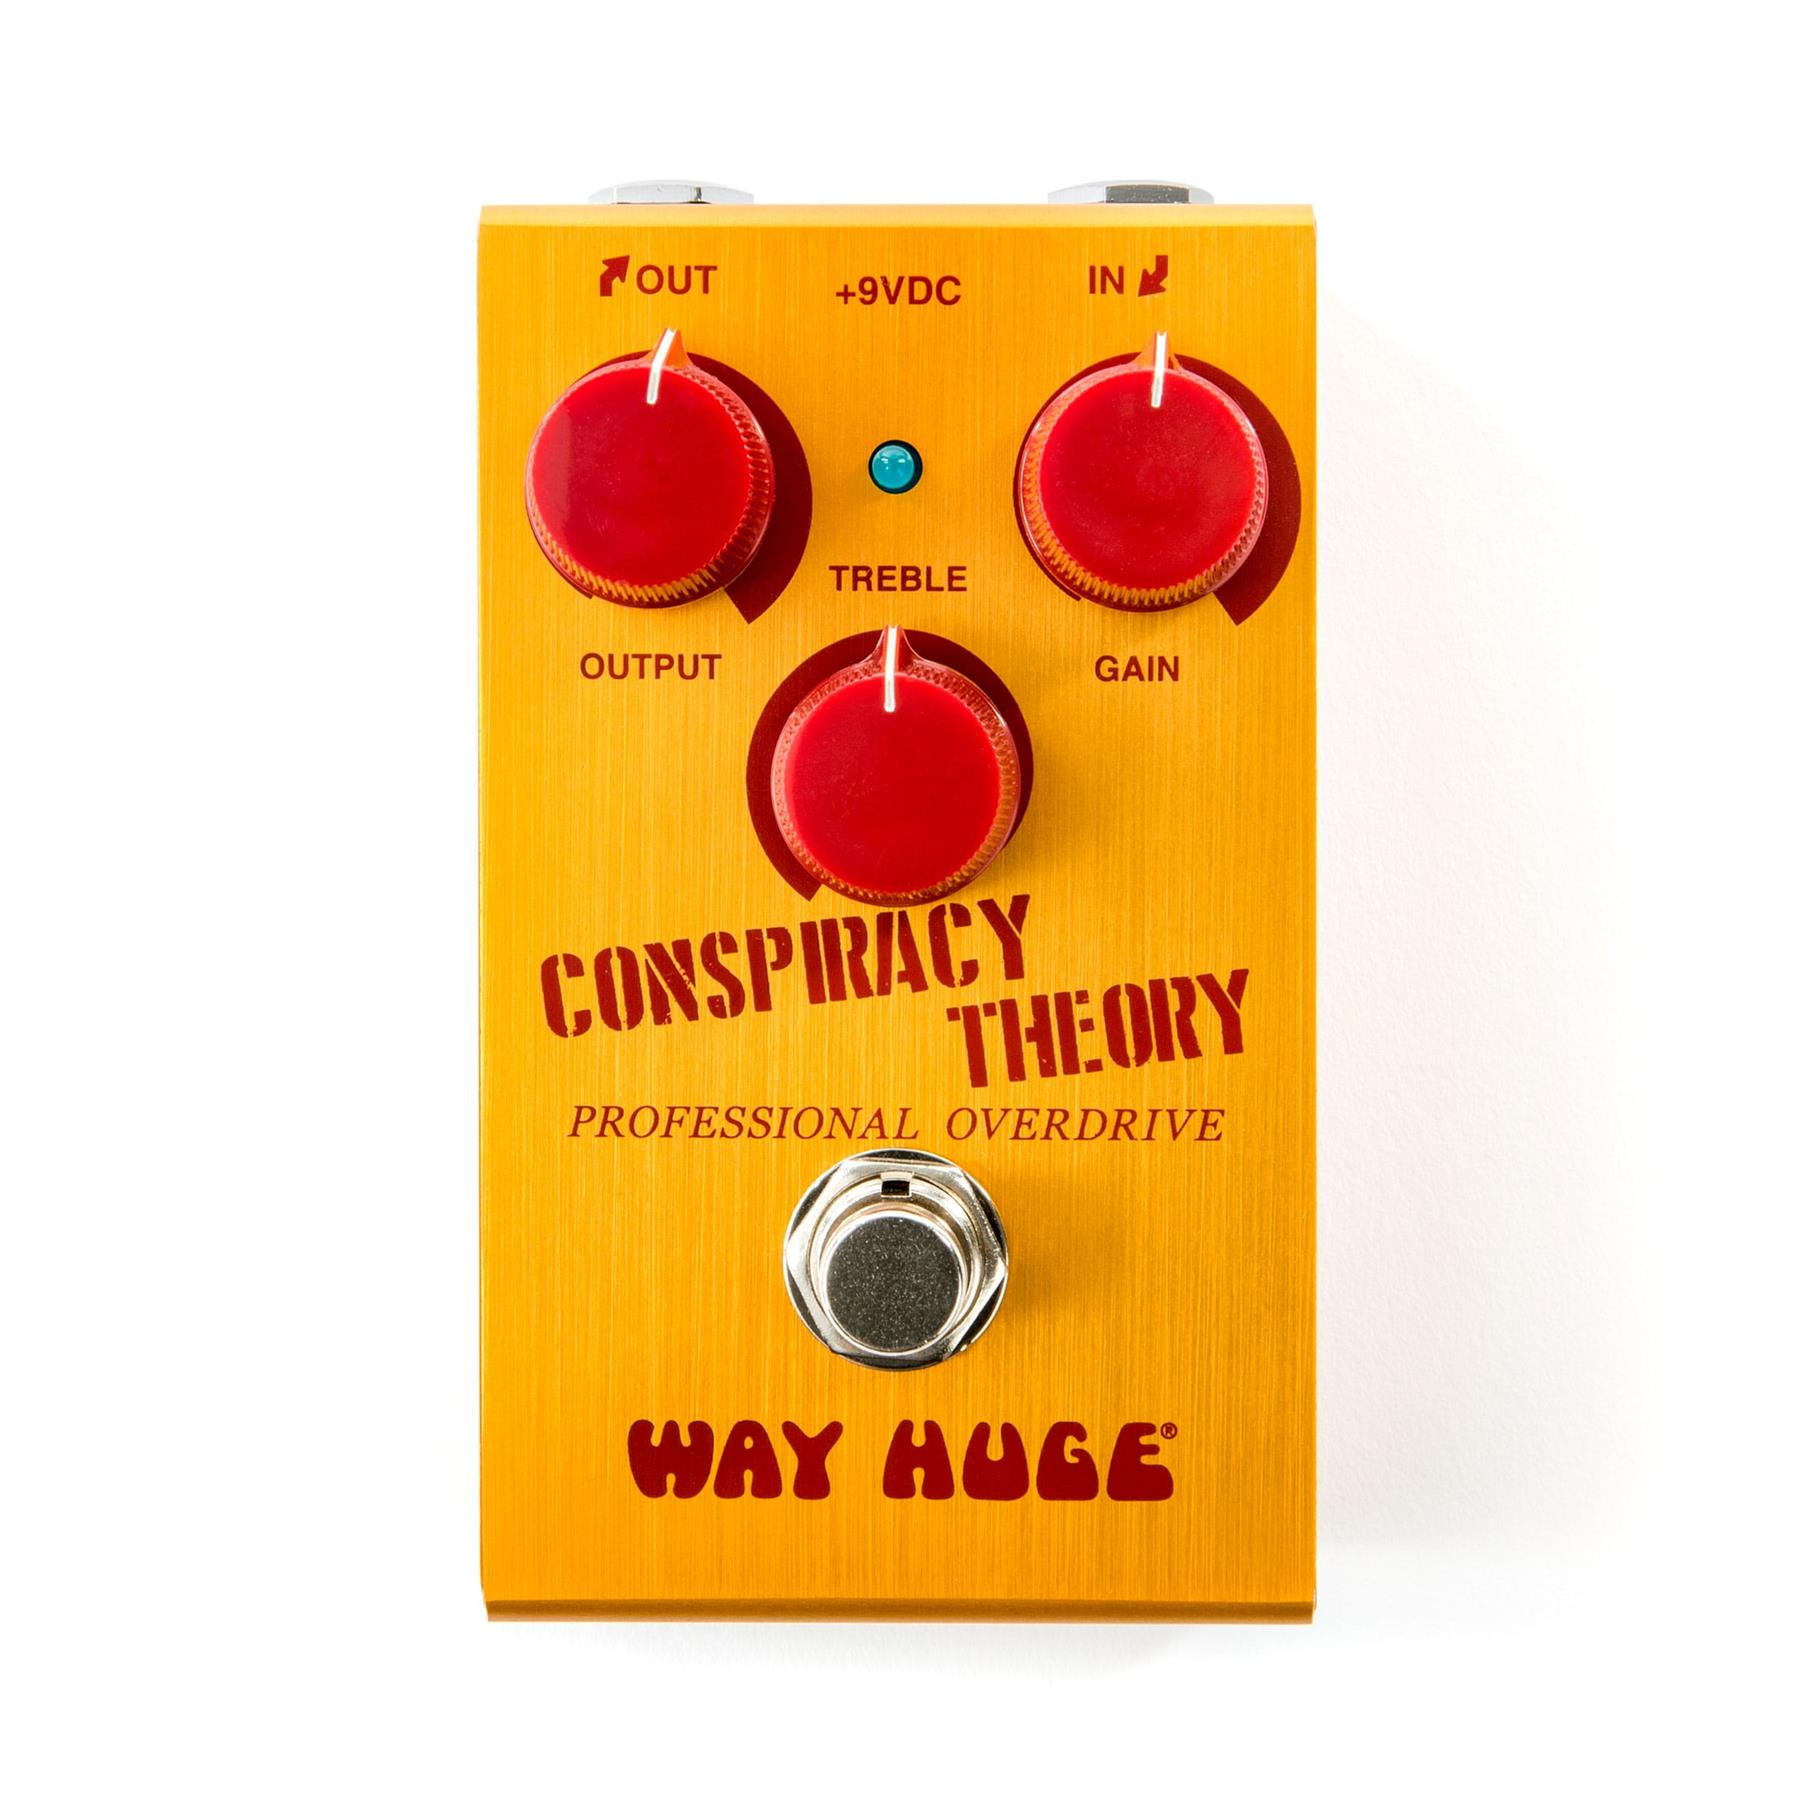 Way Huge Smalls WM20 Conspiracy Theory Professional overdrive pedal